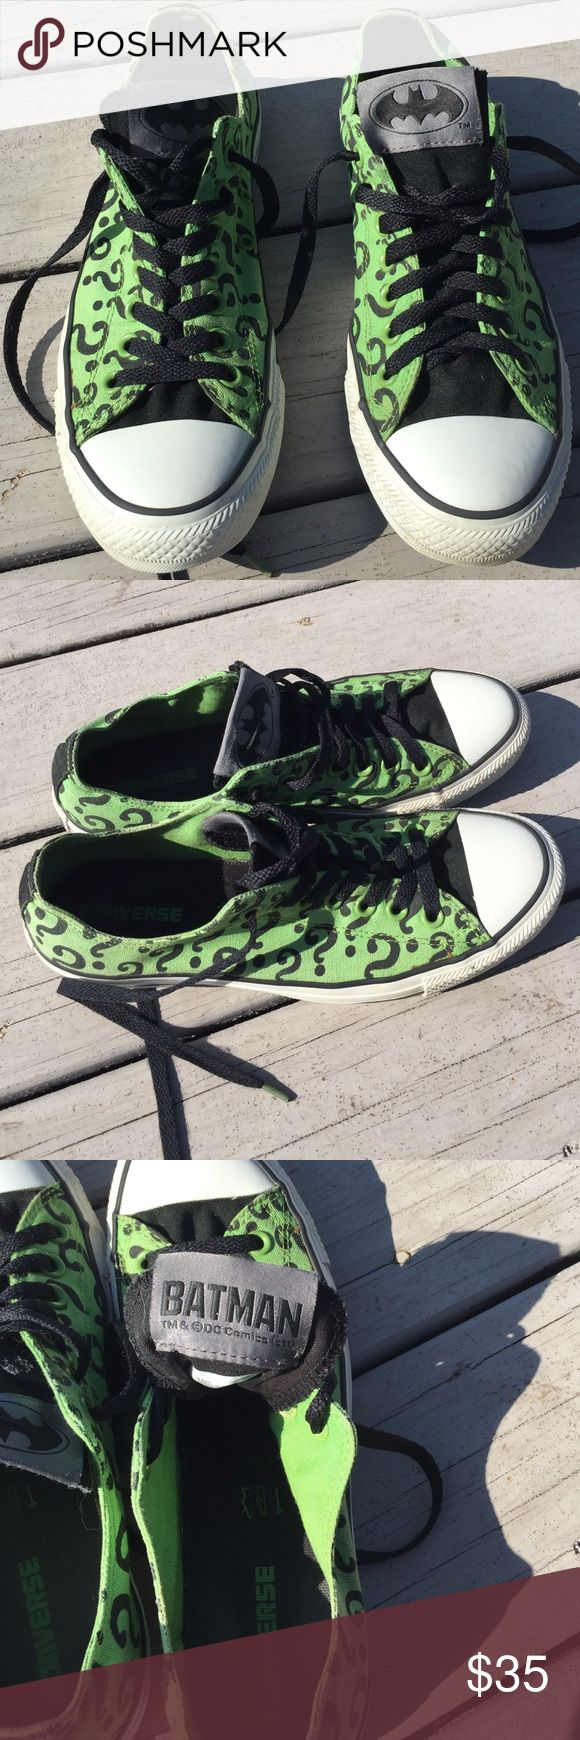 """Converse Batman Series""""Joker"""" 8 .5 Sneakers Converse Batman Series """"Joker"""" Sneakers , size 8.5, Lace up, Black Question Marks on Green,pictures are part of the description. Converse Shoes Sneakers"""